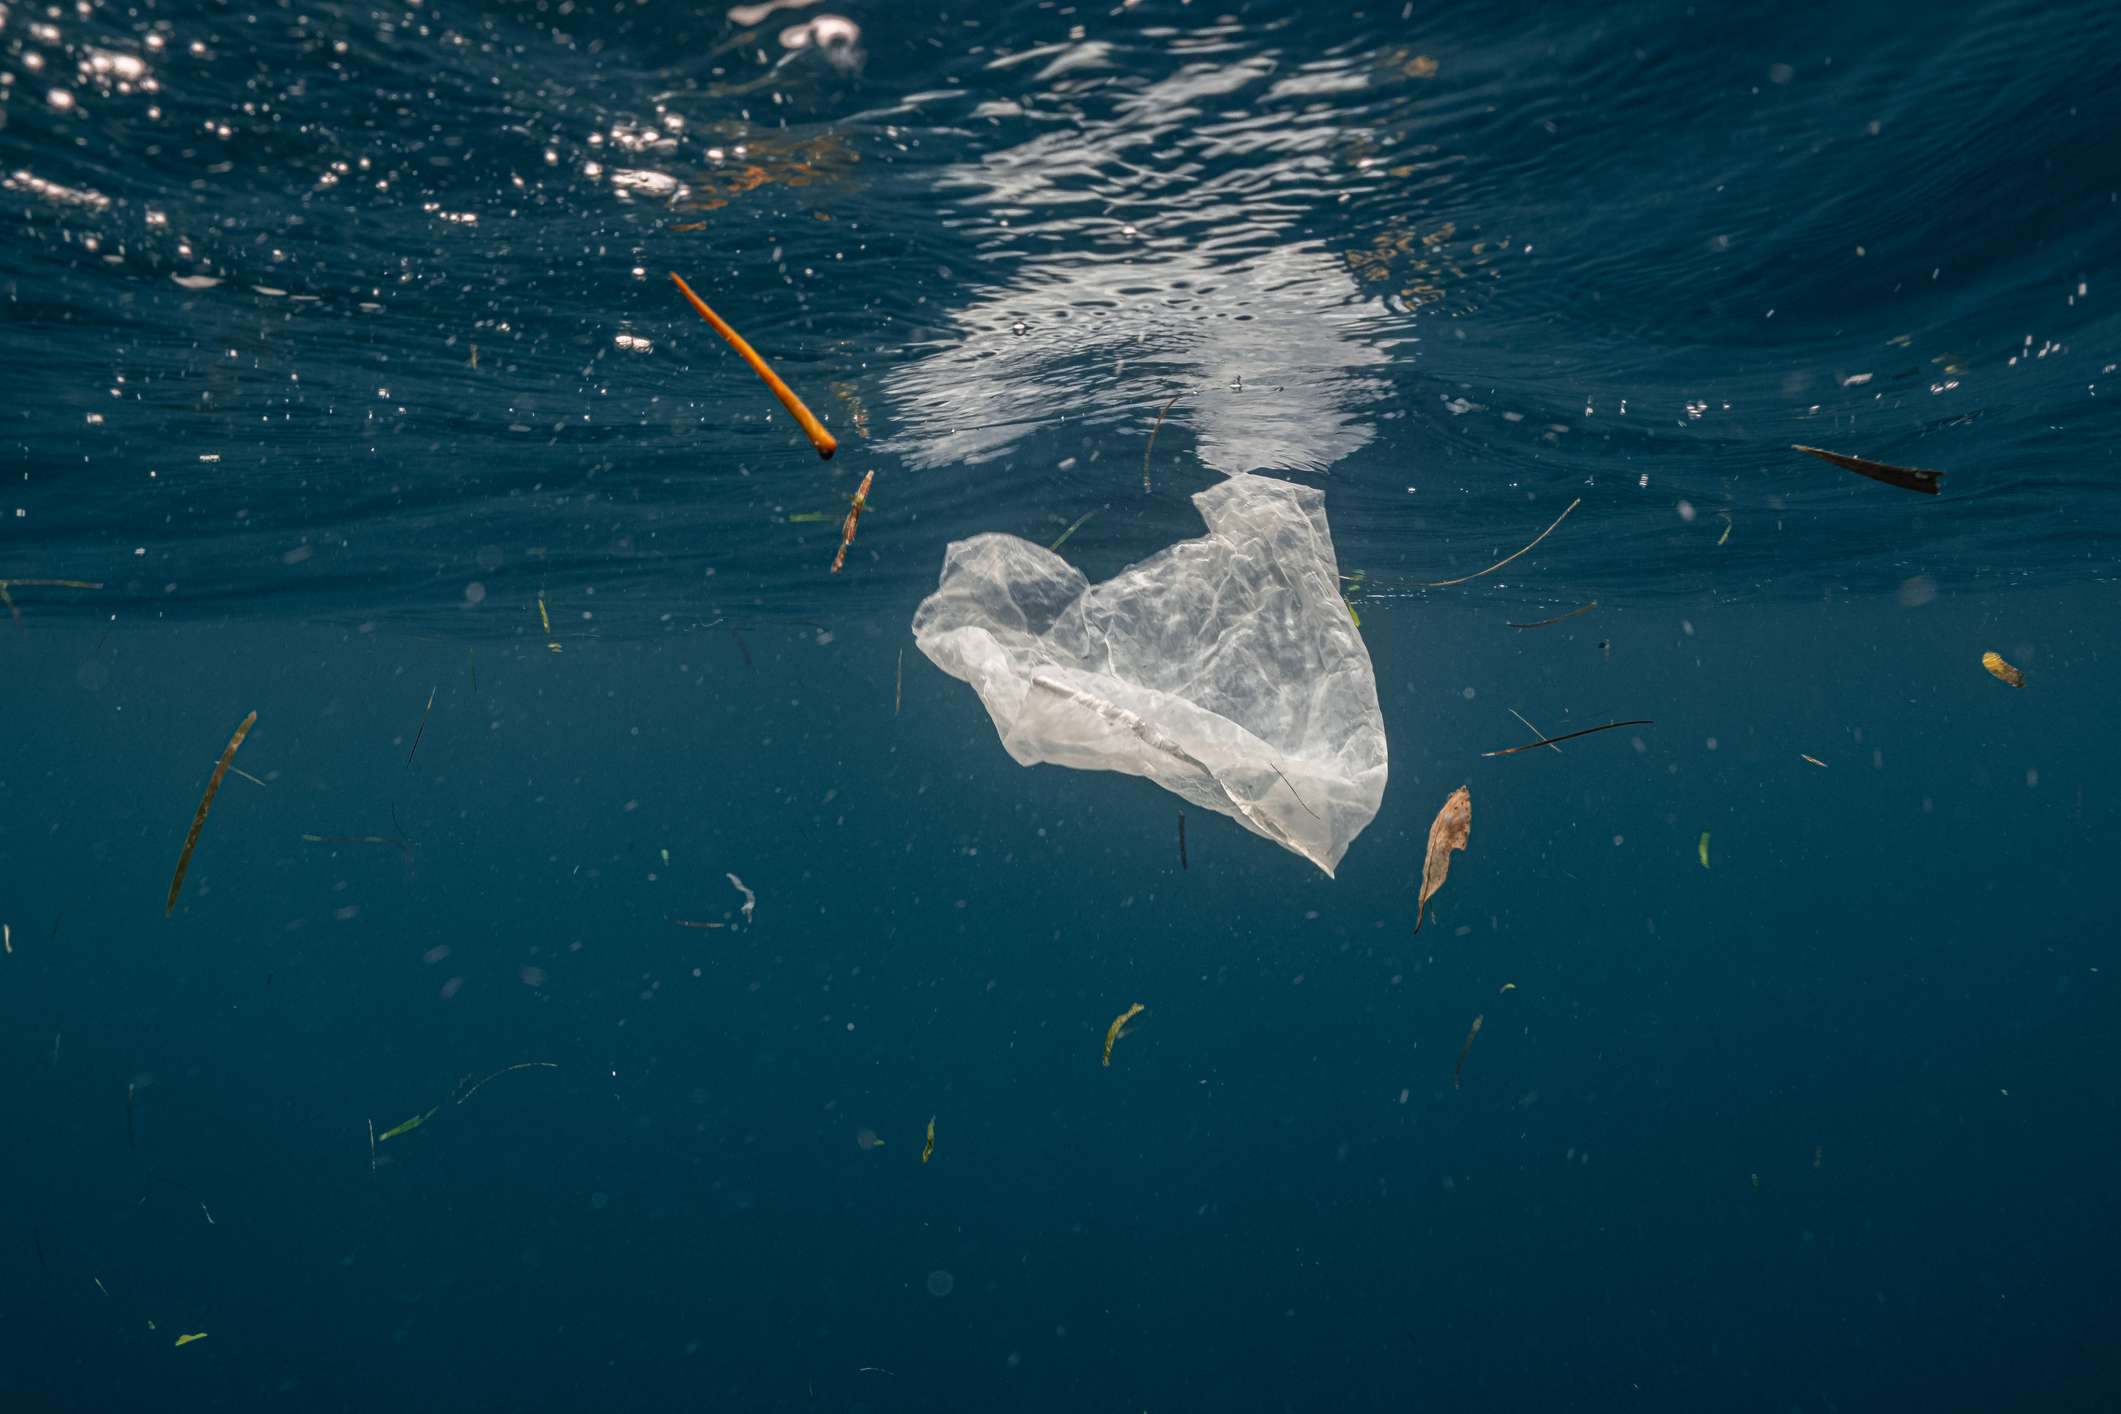 Single-use plastic floating in the surface